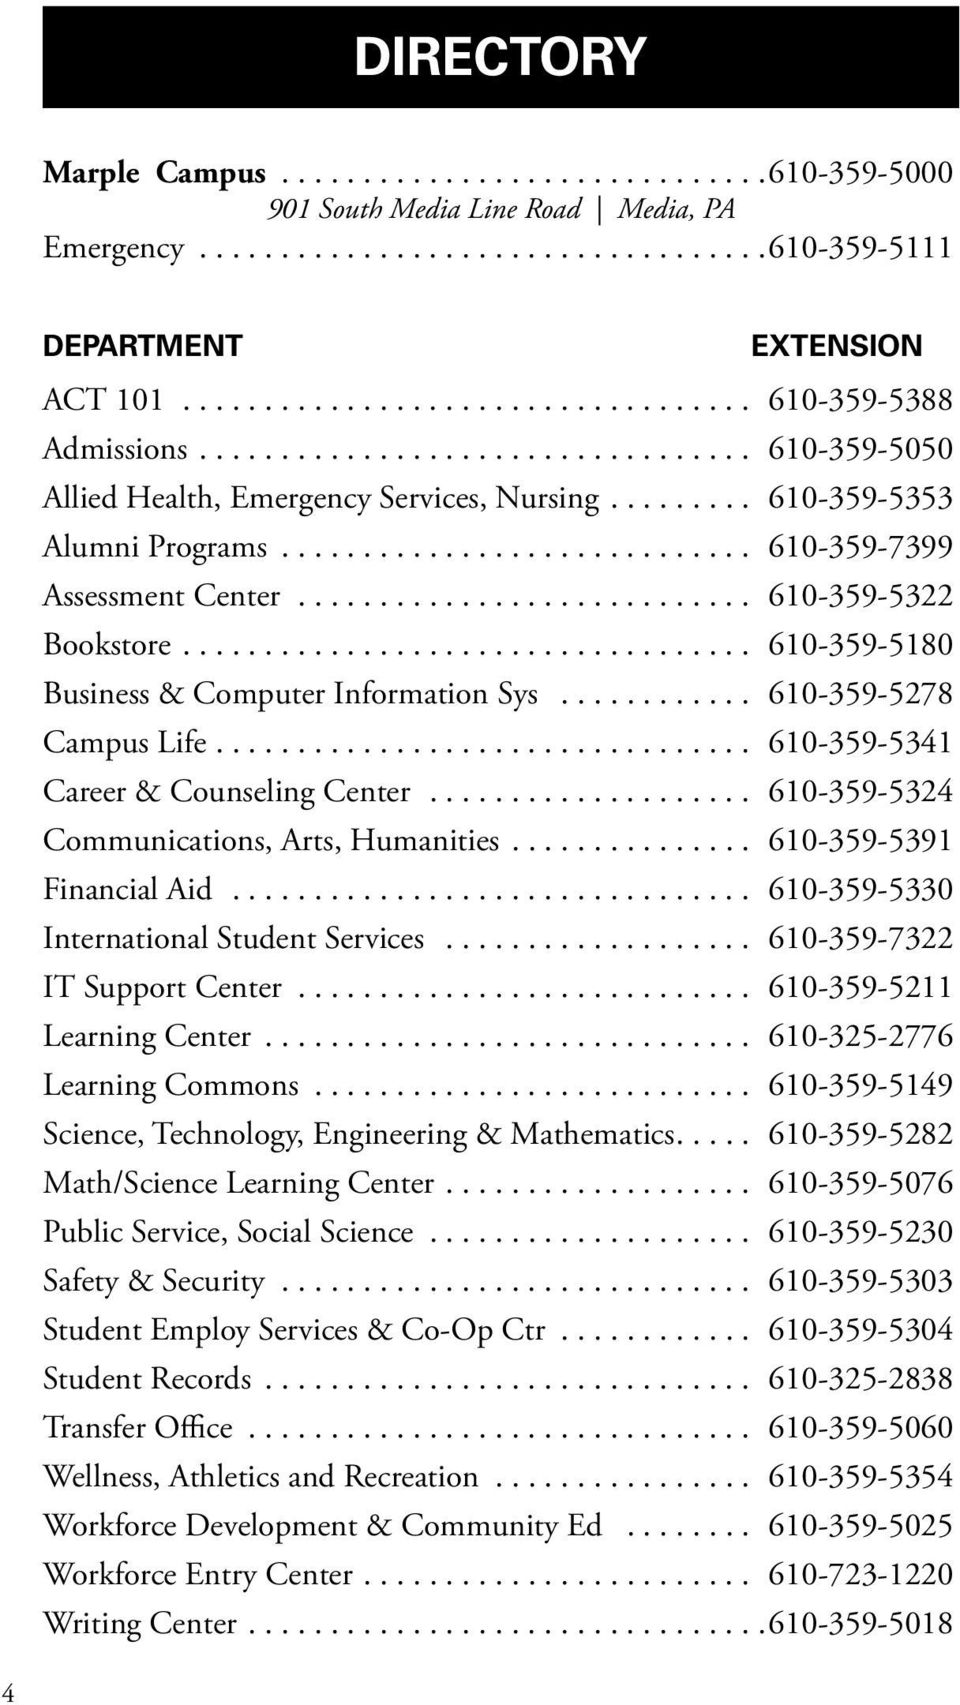 .. 610-359-5180 Business & Computer Information Sys... 610-359-5278 Campus Life... 610-359-5341 Career & Counseling Center... 610-359-5324 Communications, Arts, Humanities... 610-359-5391 Financial Aid.